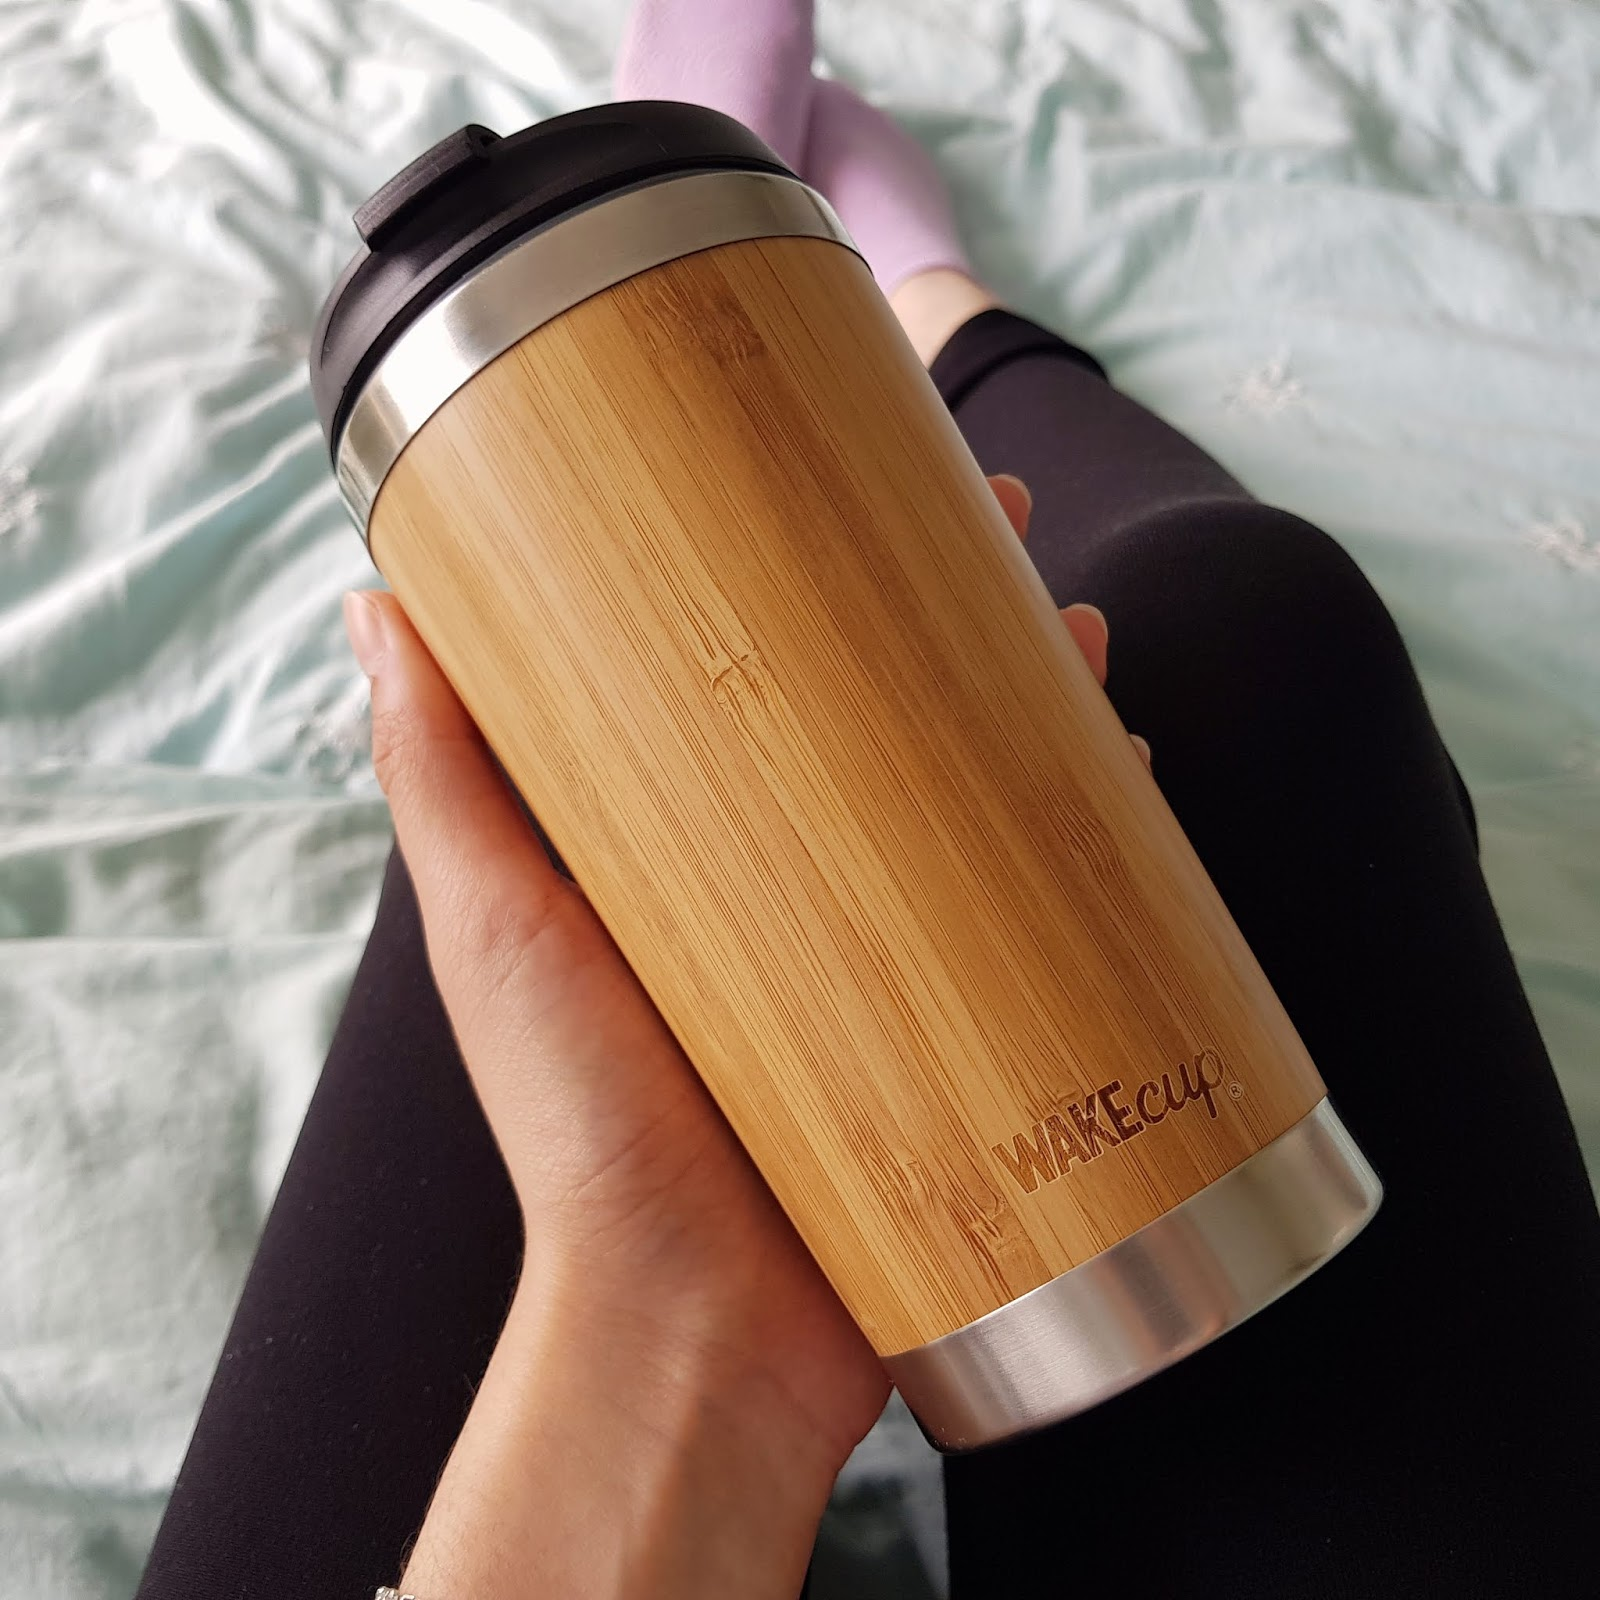 WAKEcup travel mug